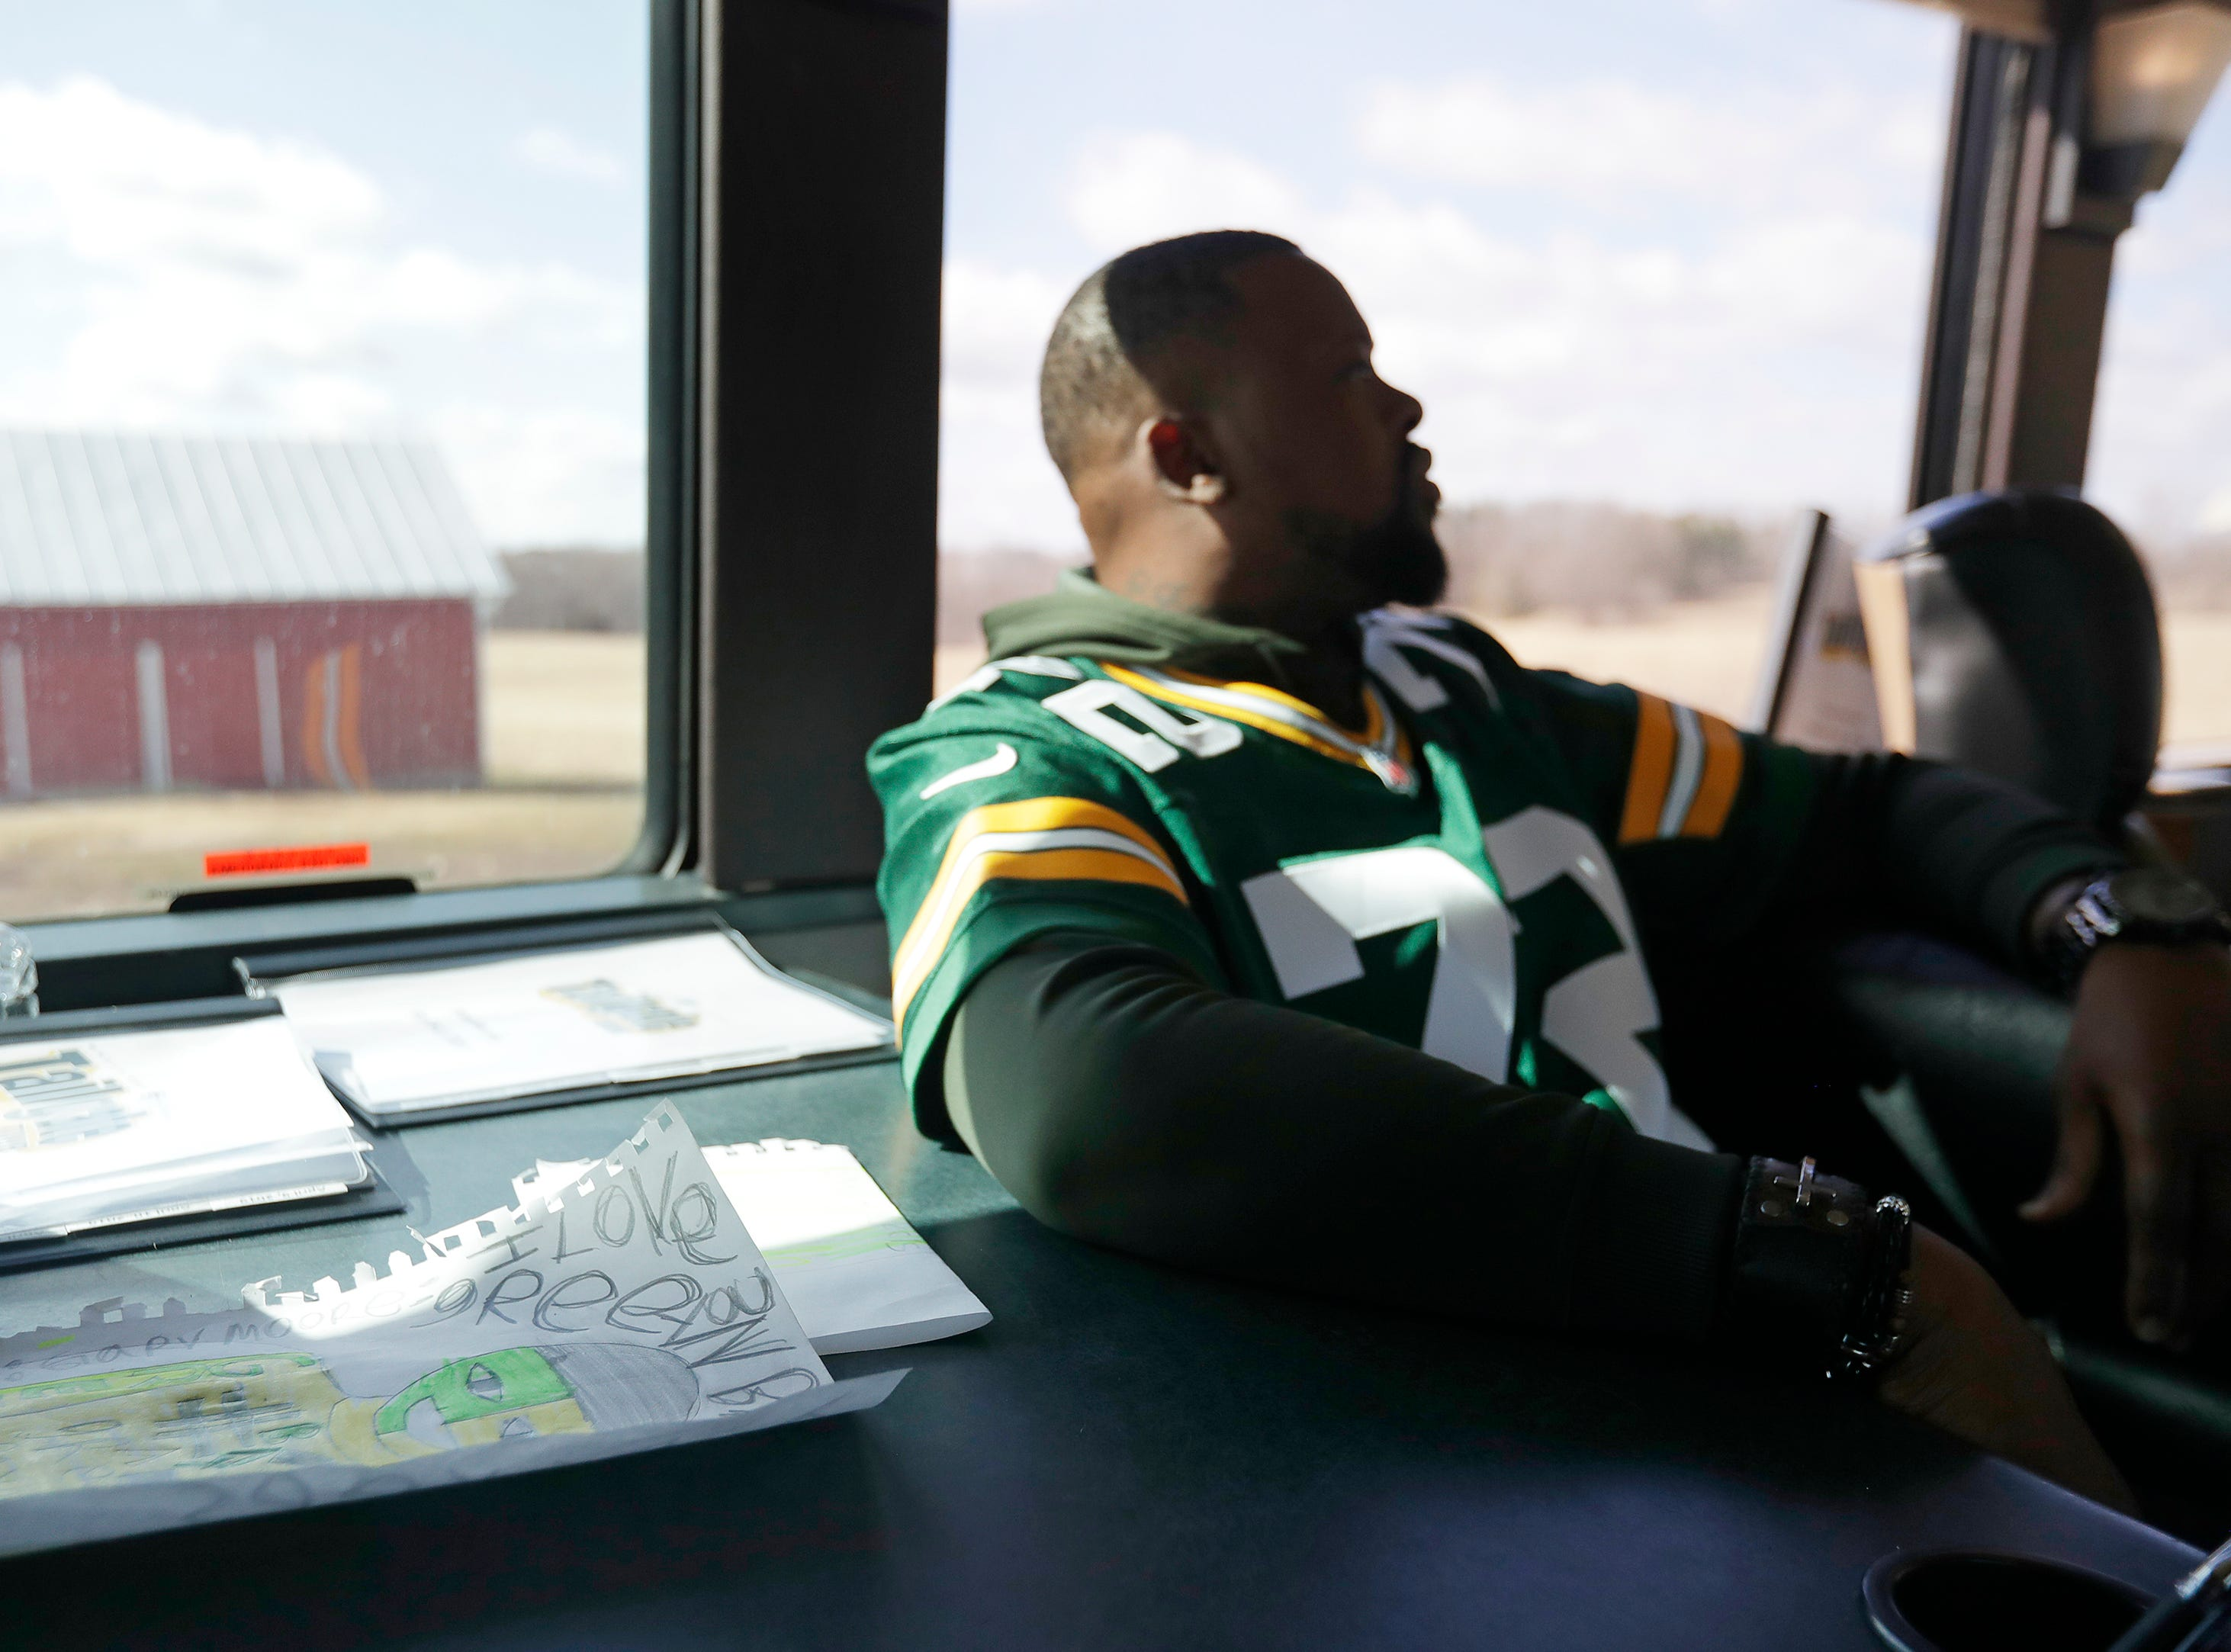 Packers-themed art sits on a table as former player Earl Dotson rides to a stop on the Green Bay Packers bus during the Packers Tailgate Tour on Tuesday, April 9, 2019 in Clintonville, Wis.